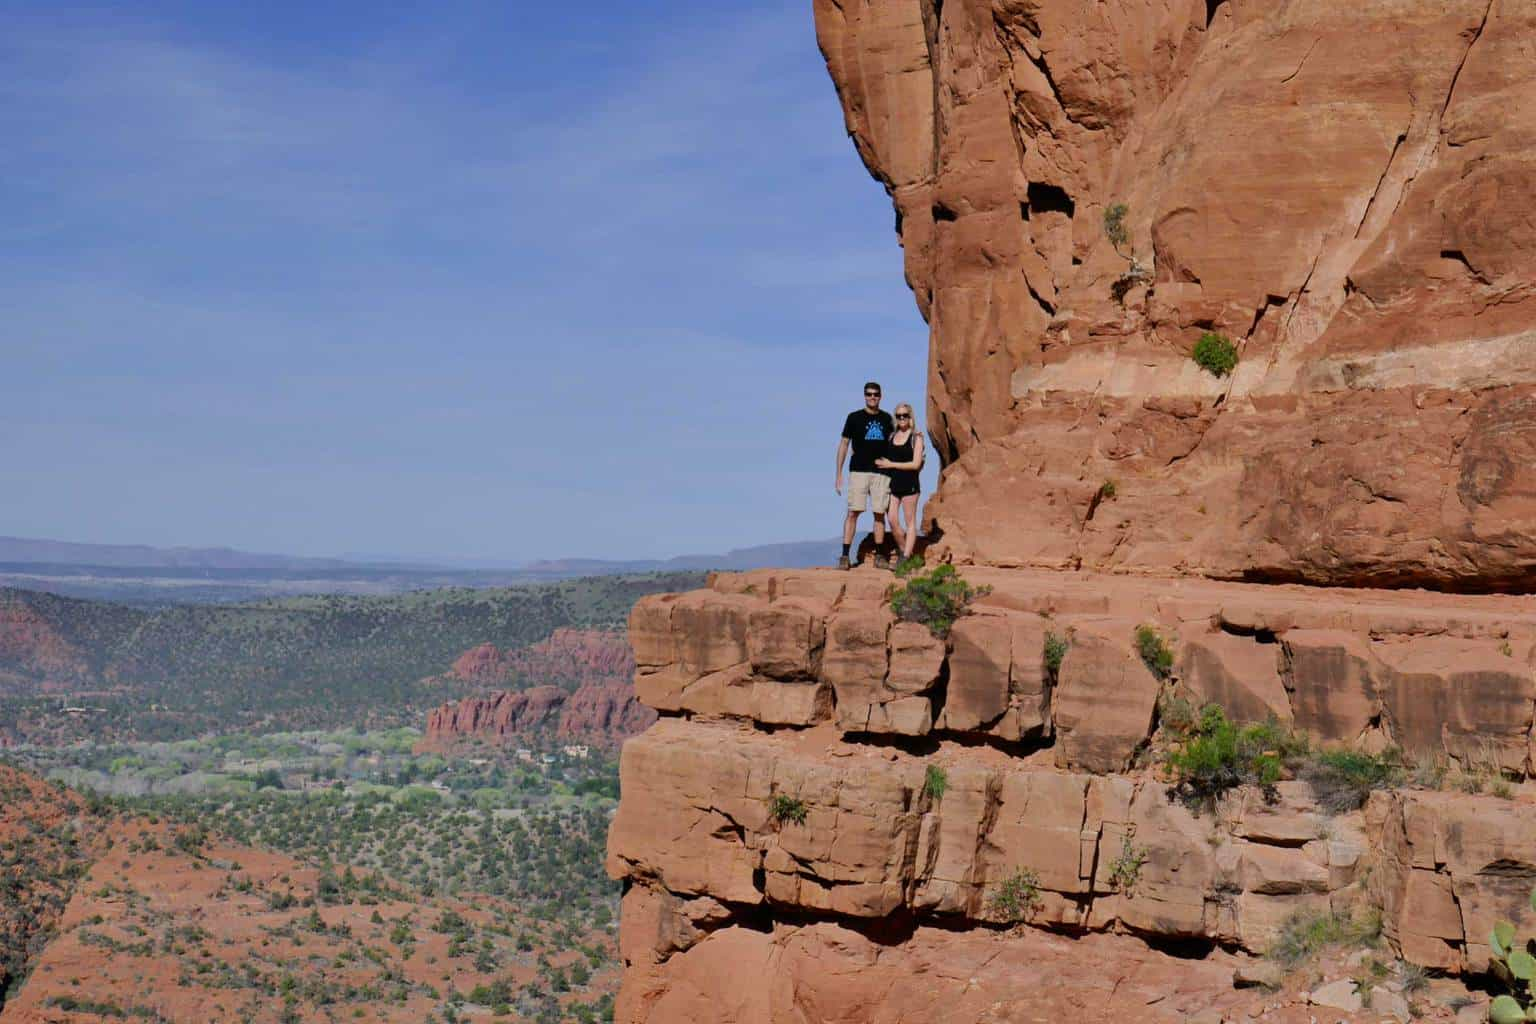 cathedral-rock-sedona-arizona-best-hikes-trails-21